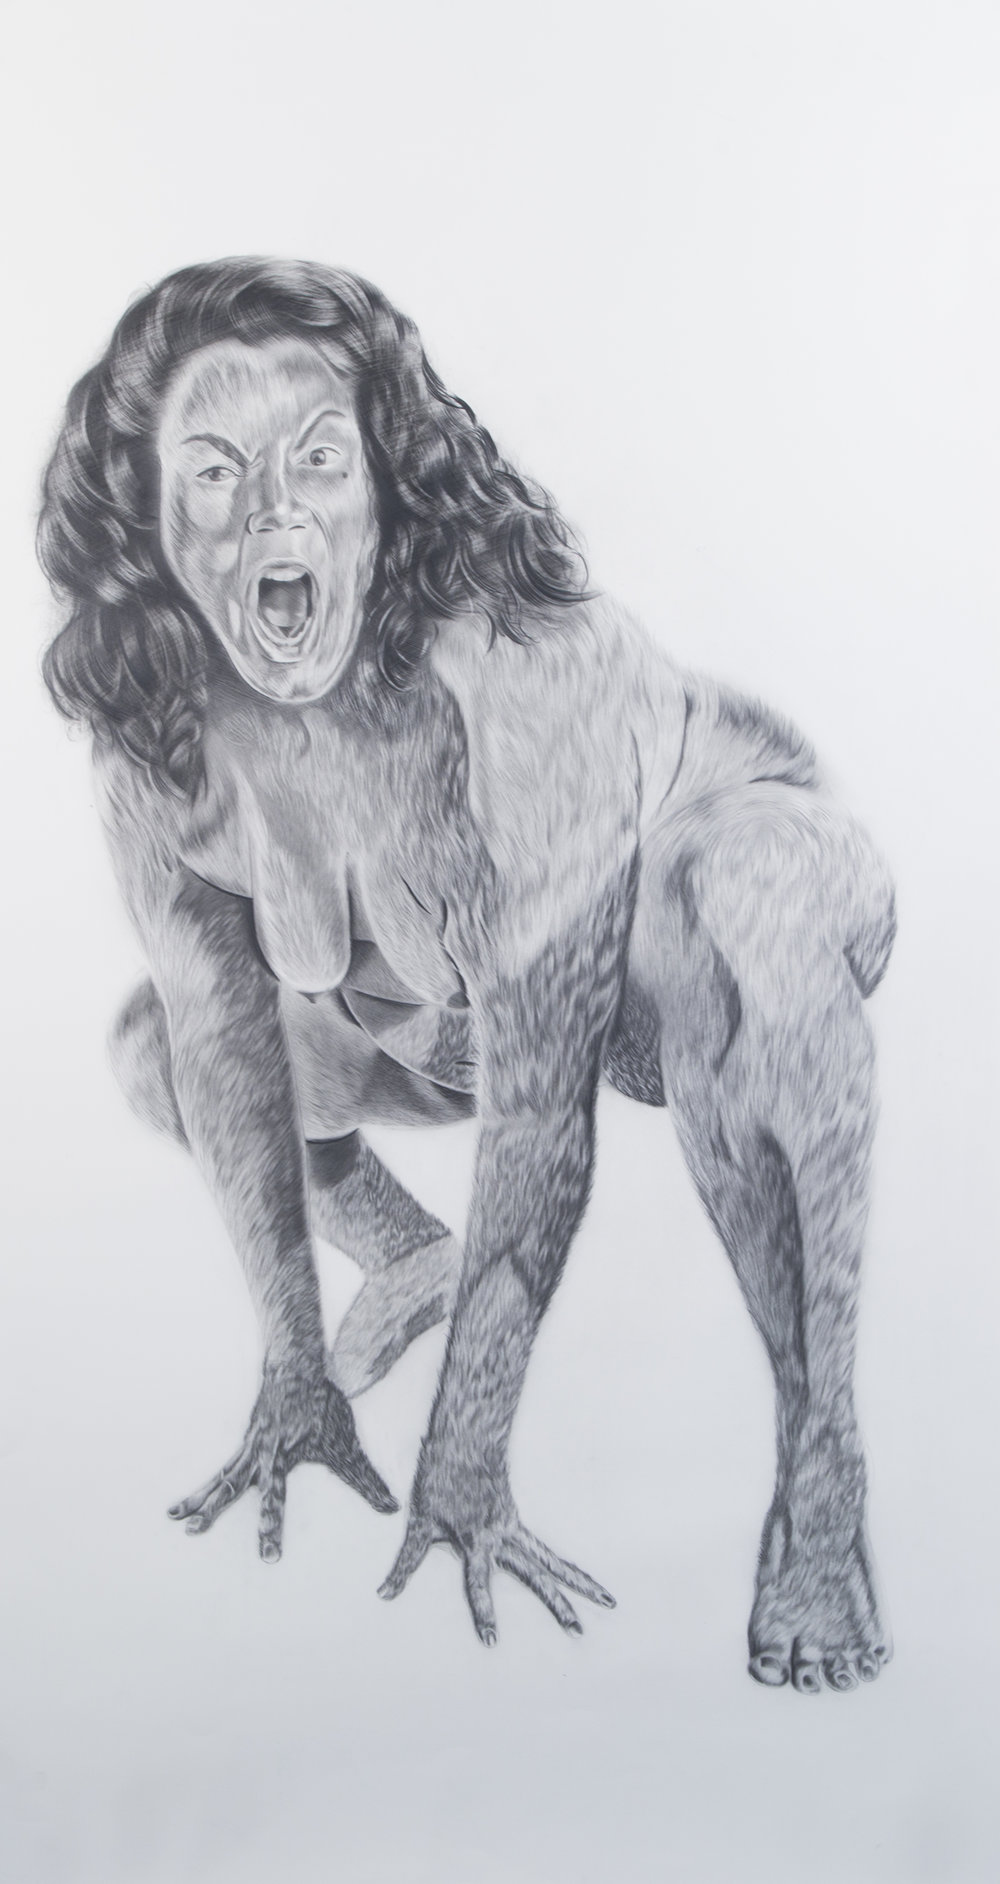 Chupacabra, 61 x 33 inches, graphite on paper, 2018